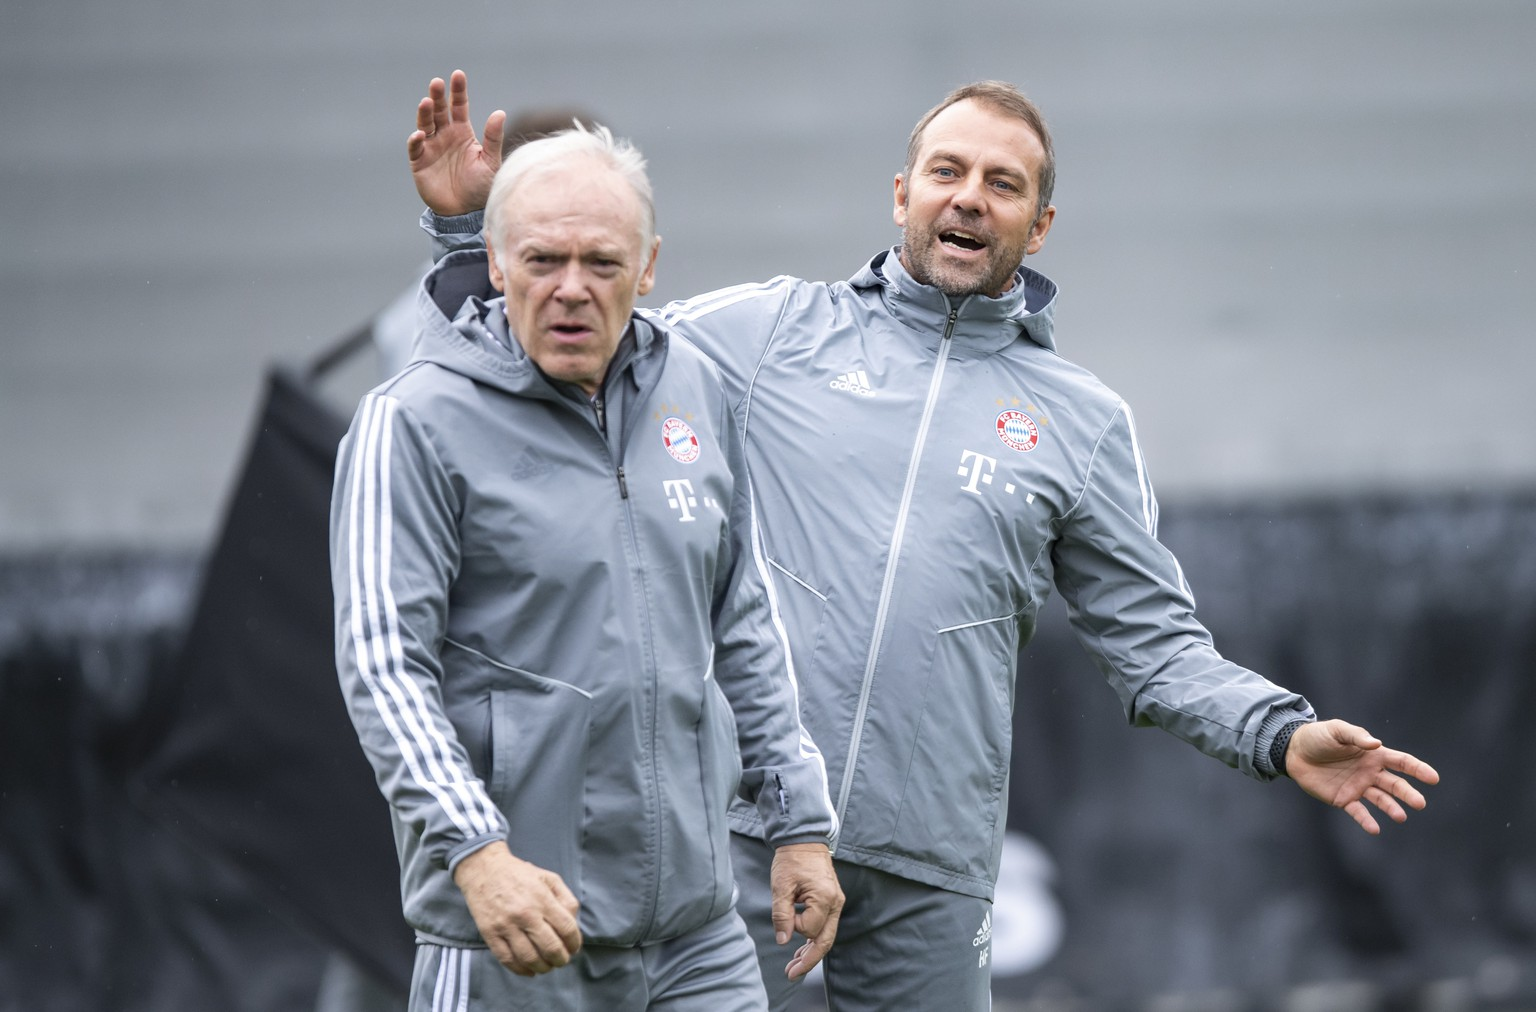 epa07973868 Bayern's interim coach Hansi Flick (R) and assistant coach Herman Gerland (L) attend a training session at the Club's training ground in Munich, Germany, 05 November 2019. Bayern Munich will face Olympiacos Piraeus? in their UEFA Champions League group B soccer match on 06 November 2019.  EPA/LUKAS BARTH-TUTTAS